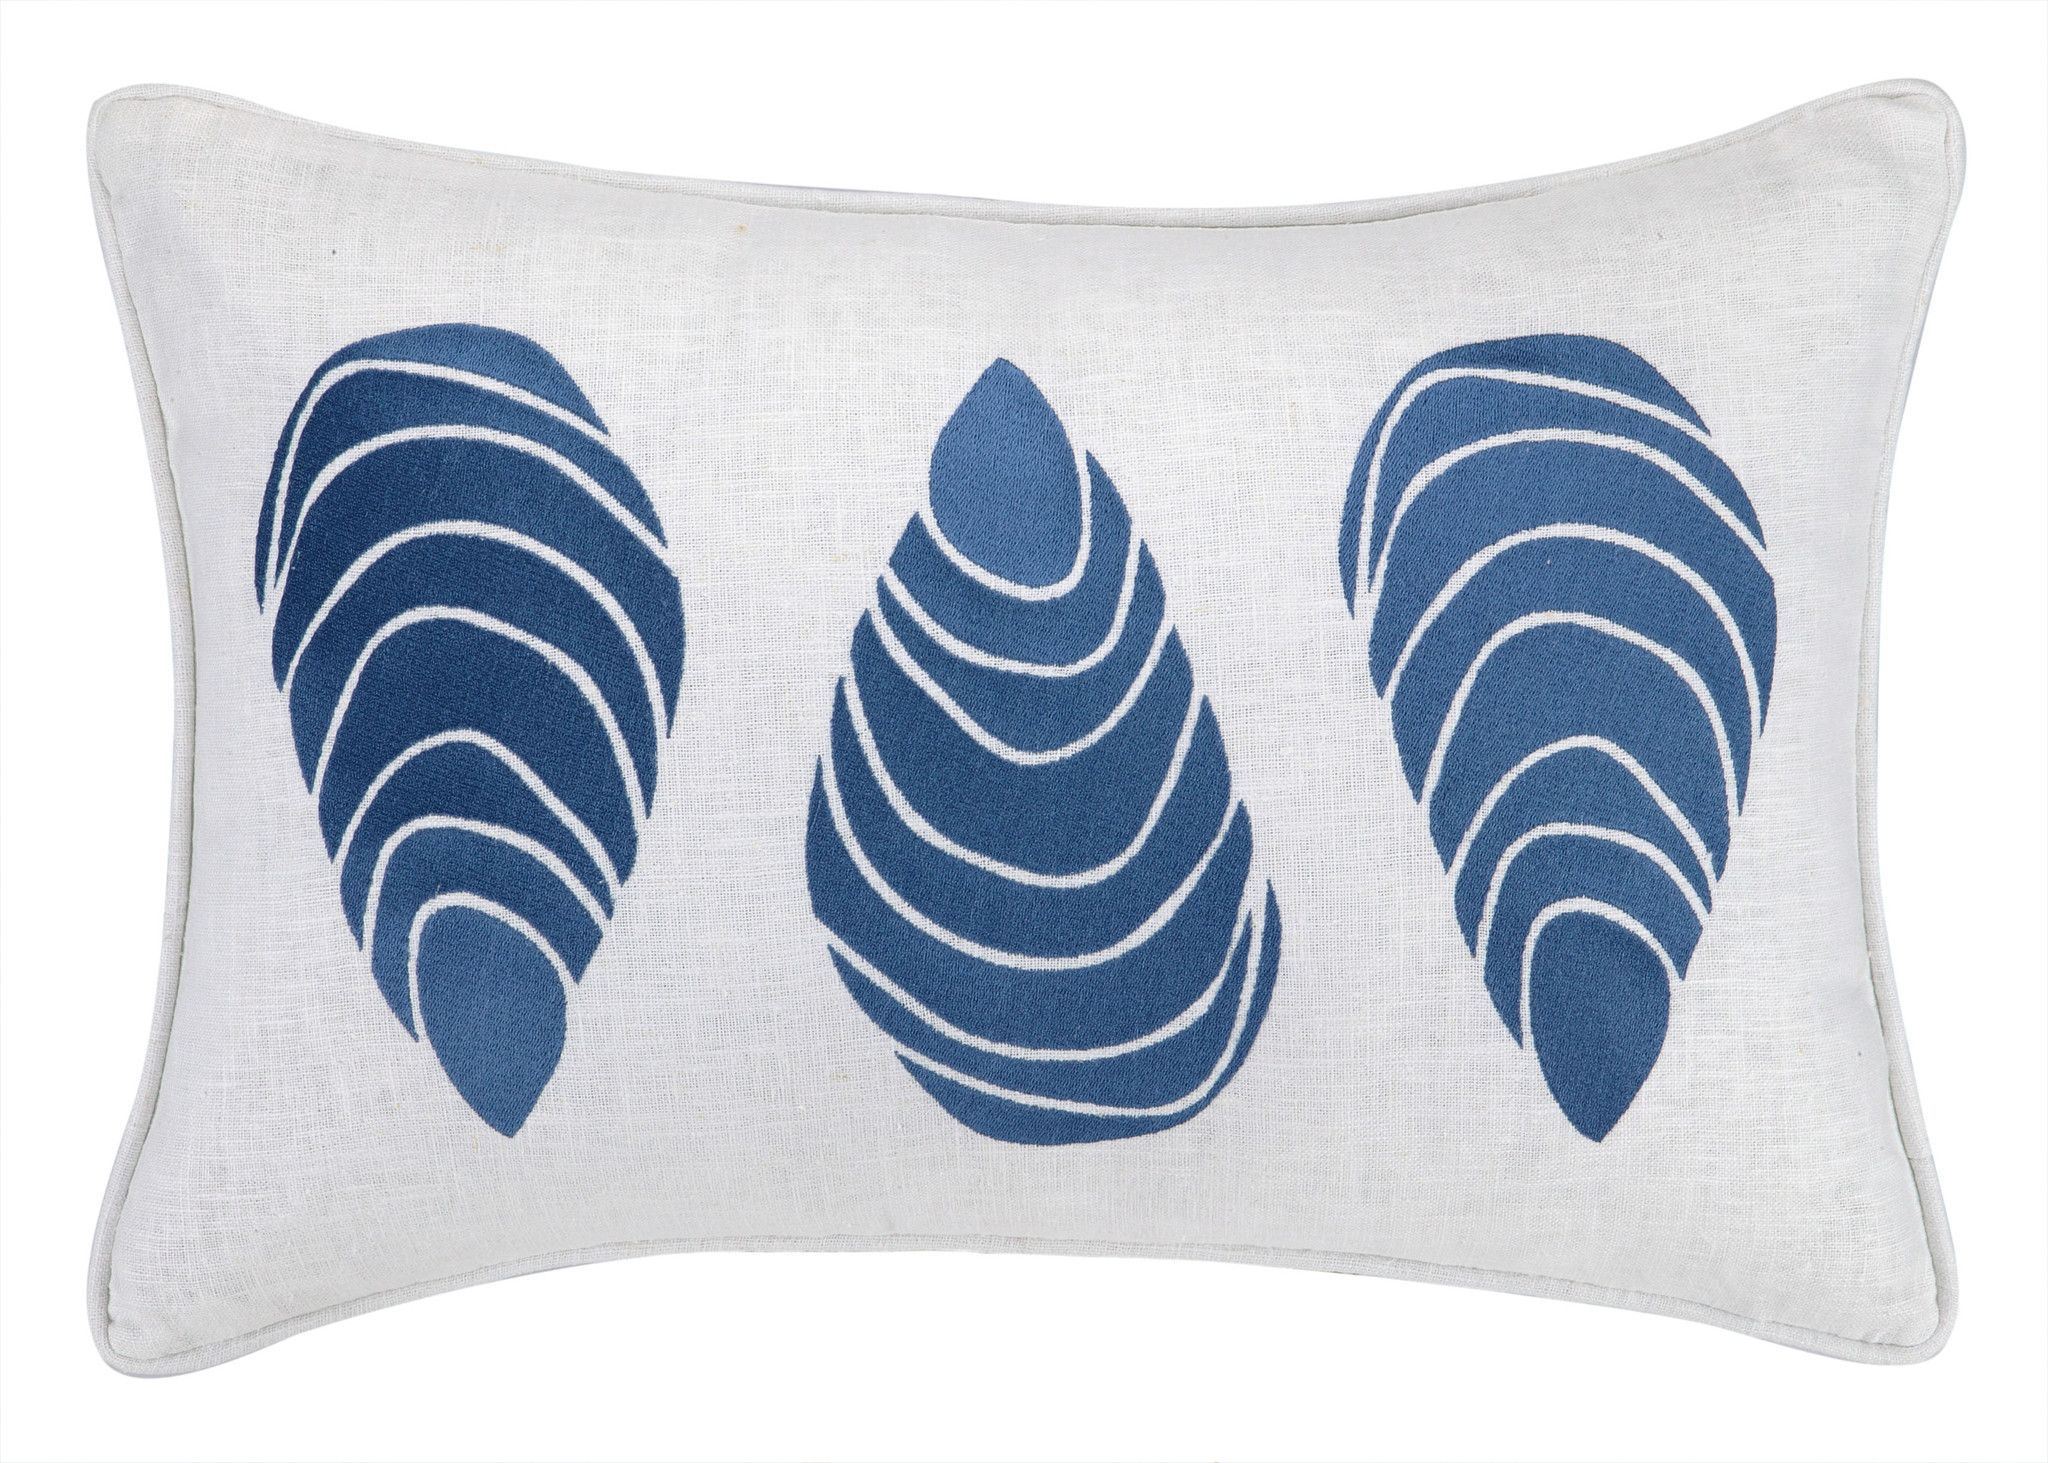 Large Mussels Navy Pillow